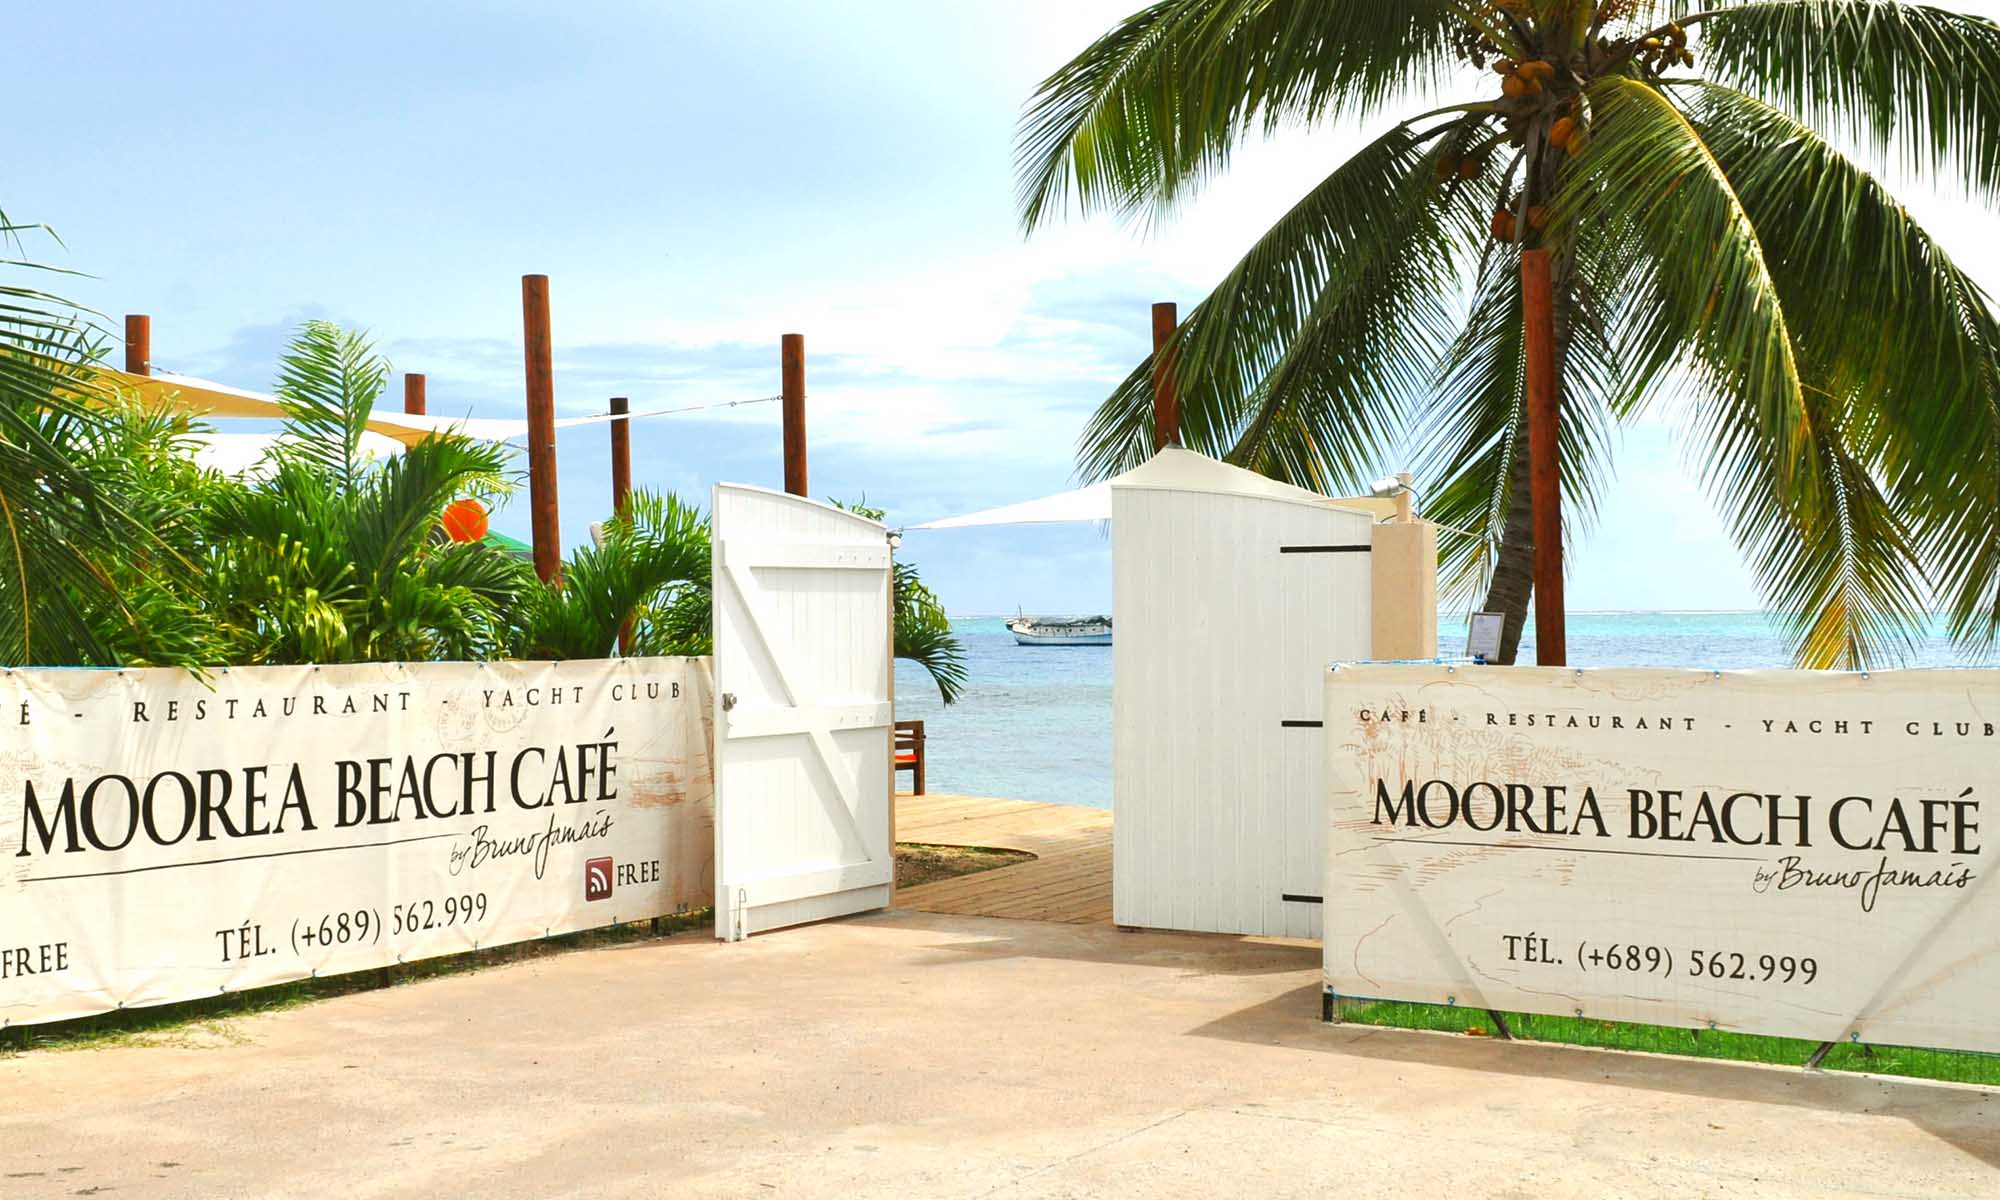 Entrance to Moorea Beach Cafe